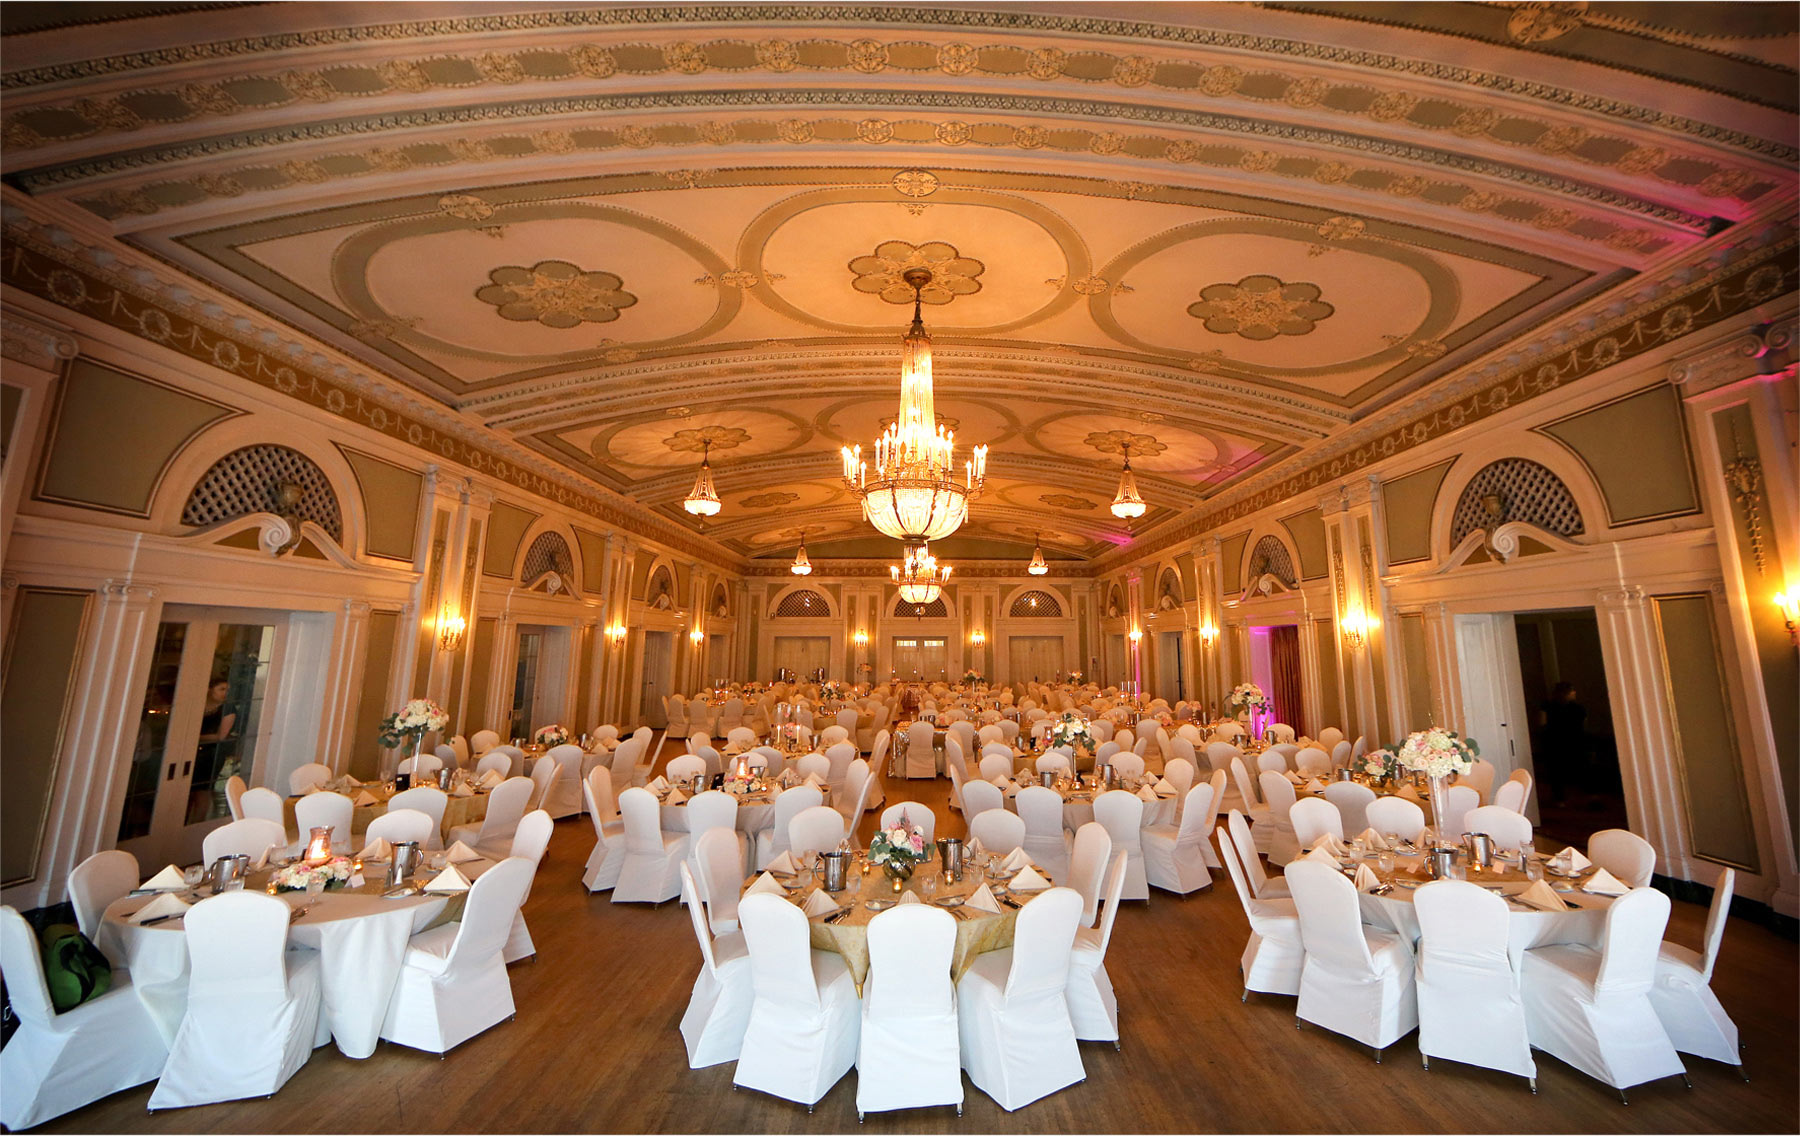 19-Duluth-Minnesota-Wedding-Photographer-by-Andrew-Vick-Photography-Summer-Greysolon-Ballroom-Reception-Decor-Decorations-Details-Table-Settings-Room-Lindsey-and-Adam.jpg